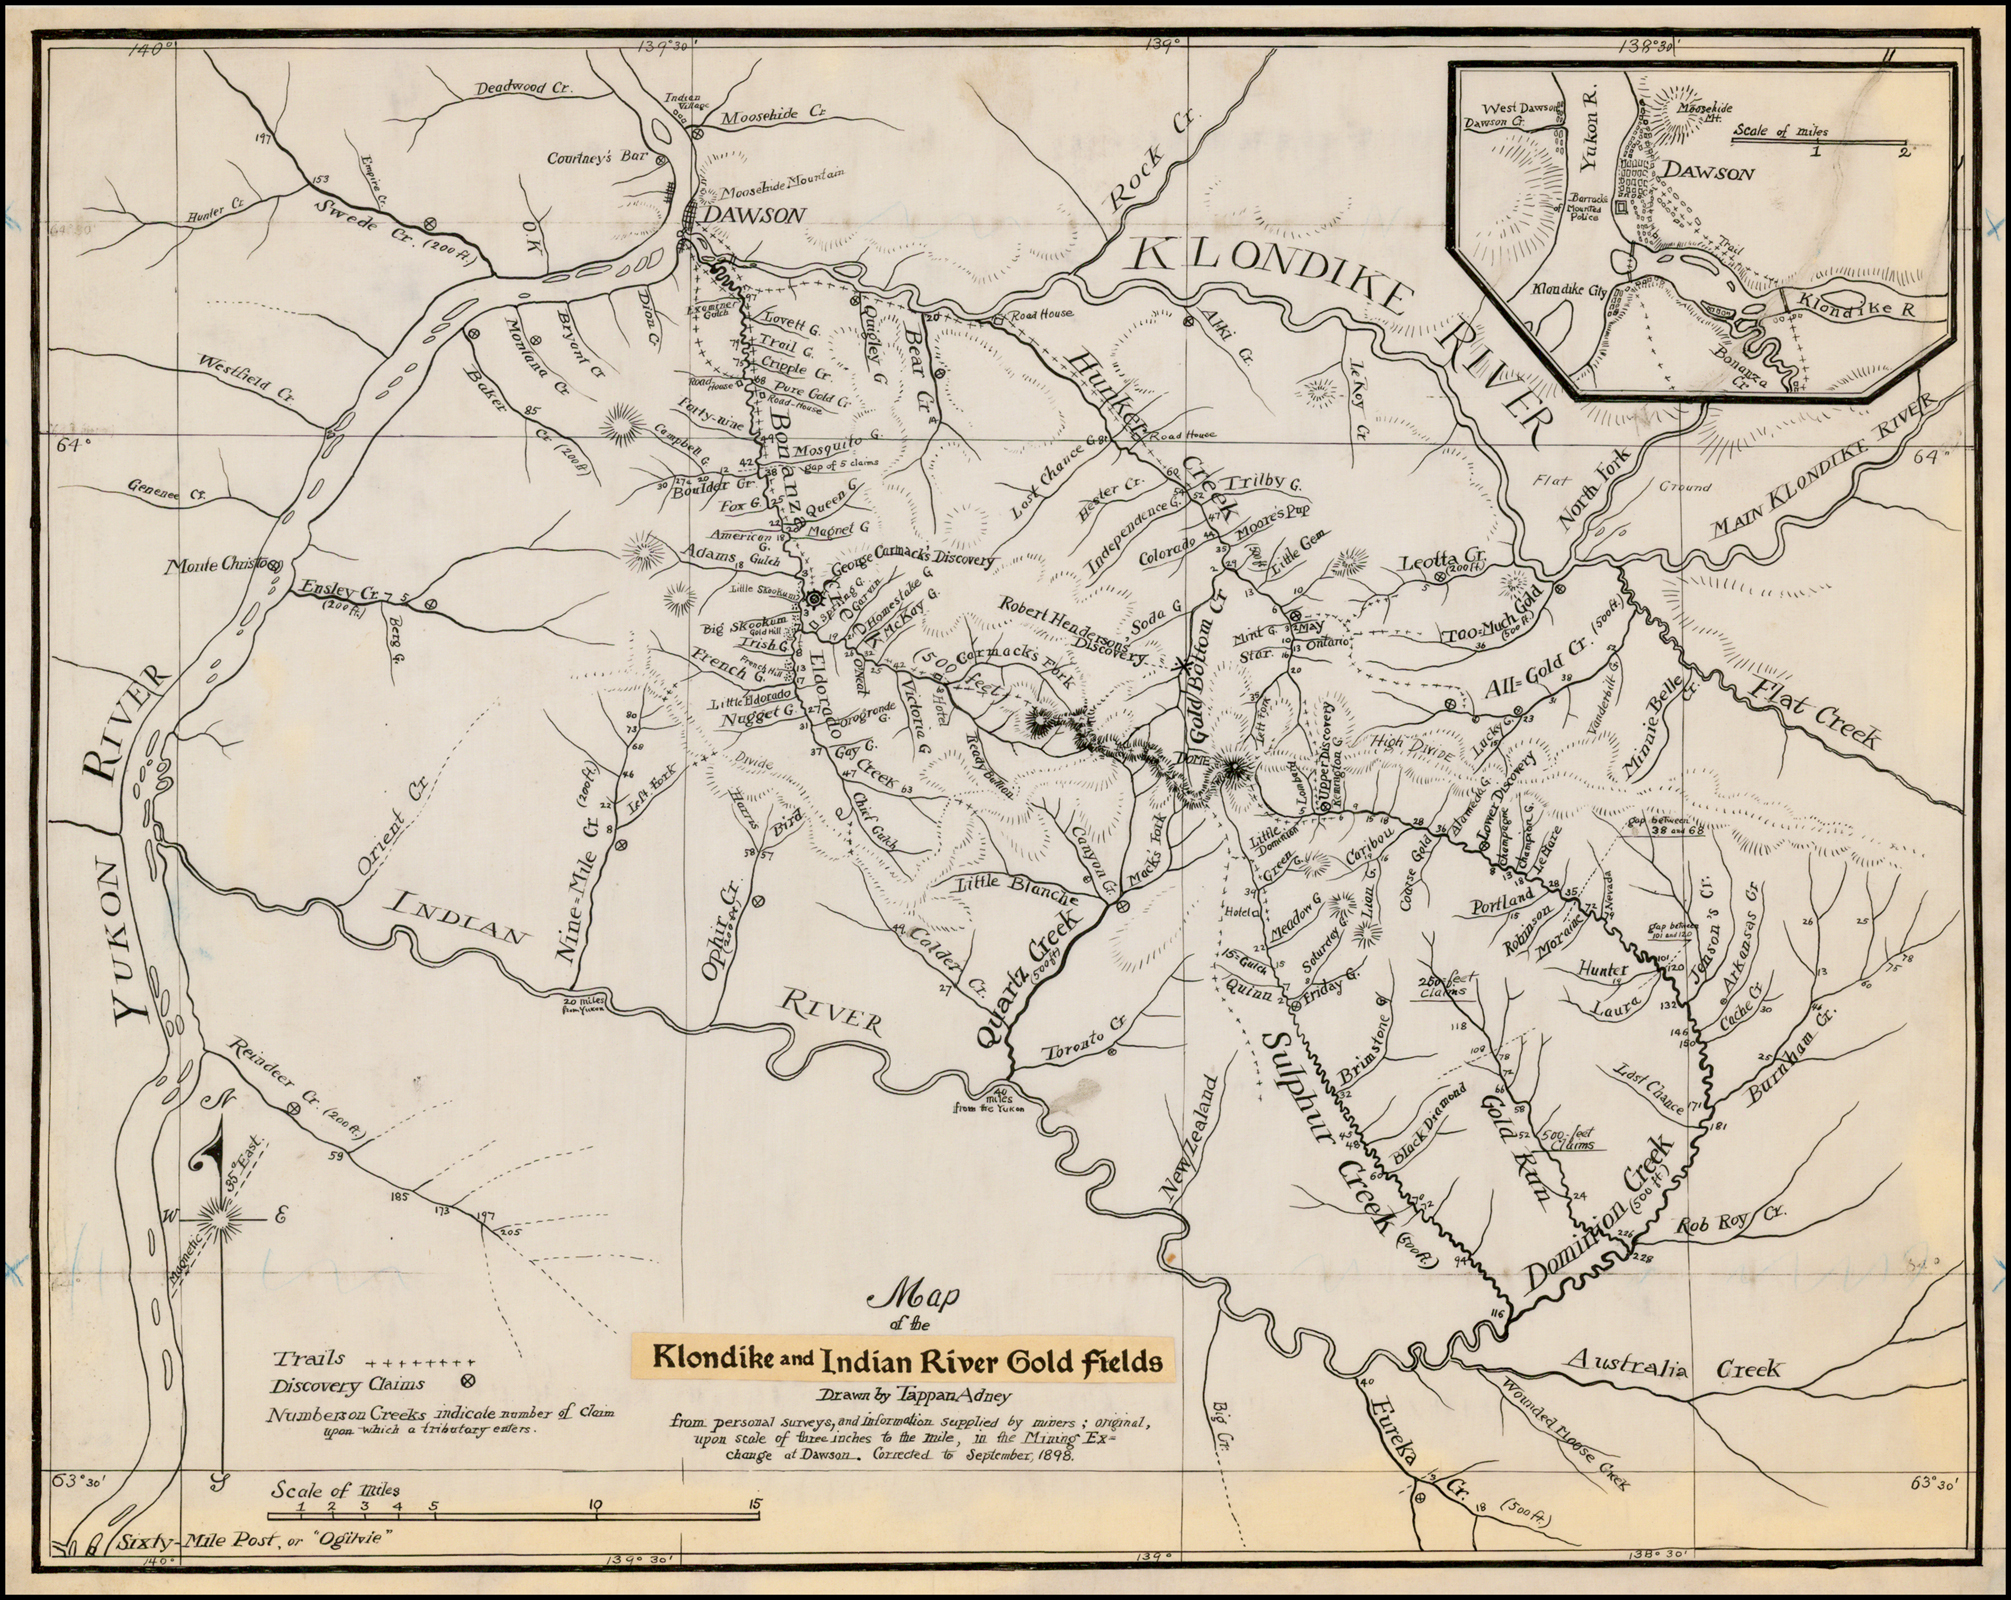 Map Of The Klondike And Indian River Gold Fields Drawn By